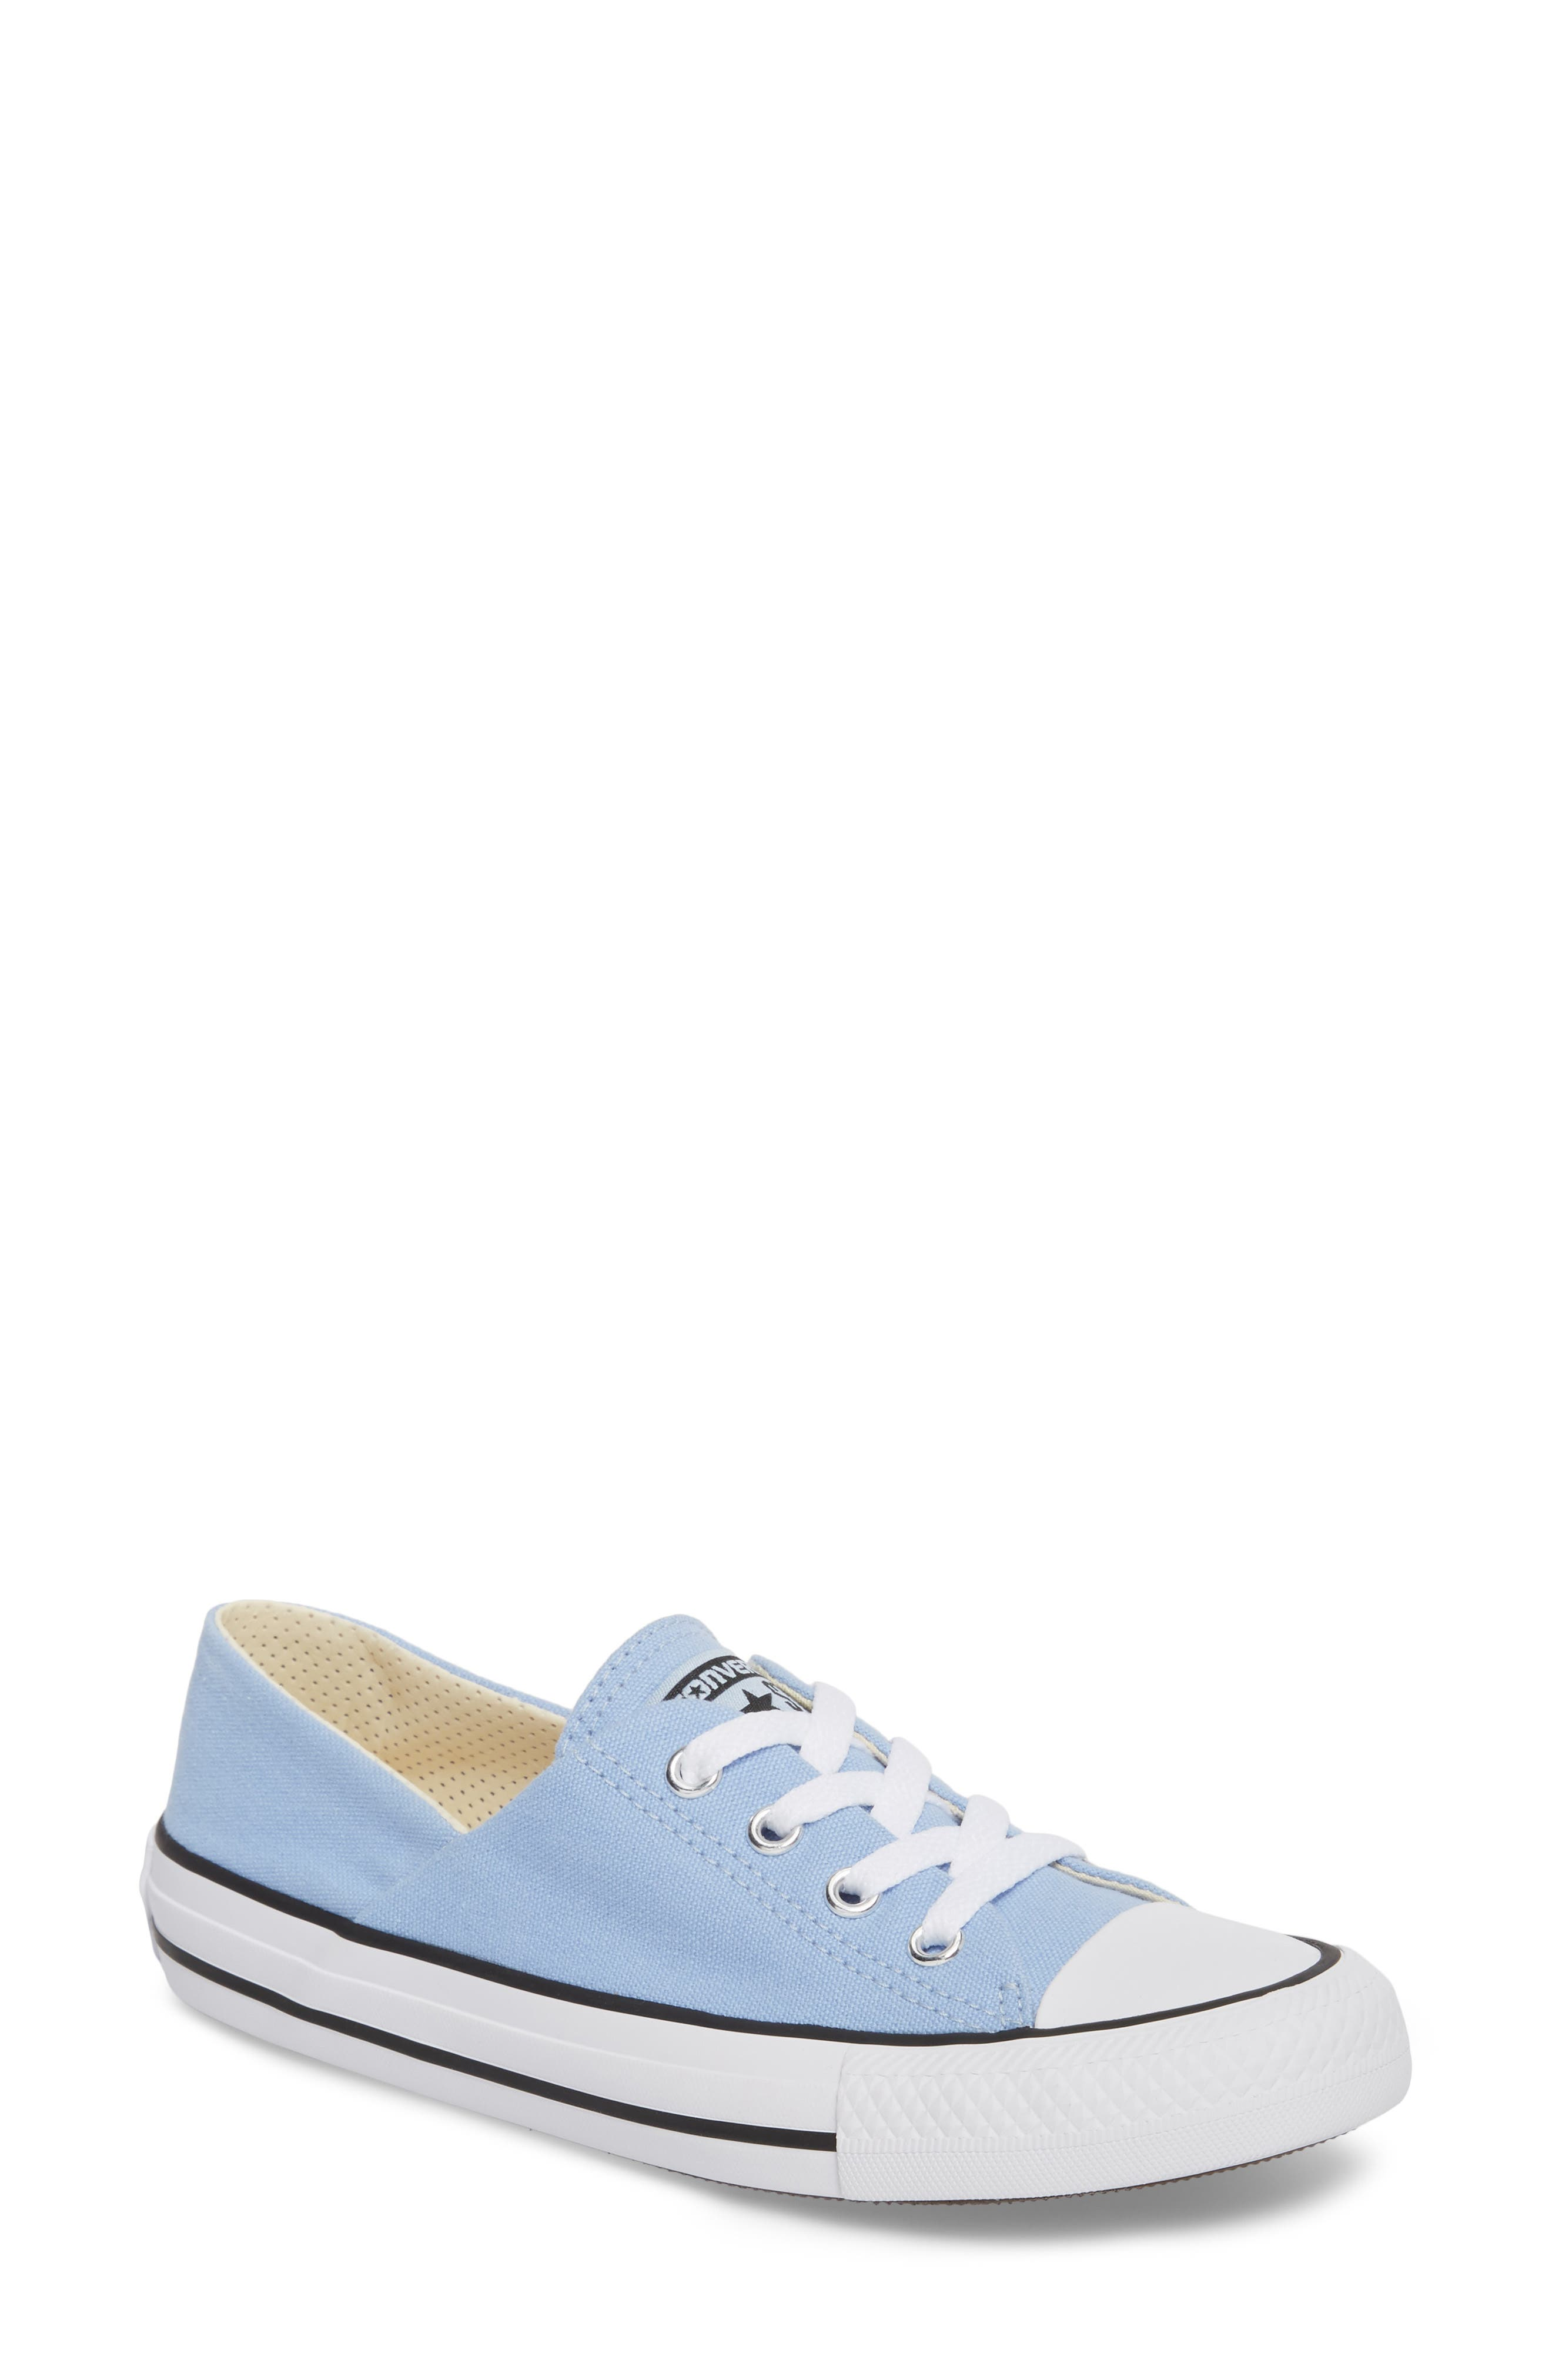 Alternate Image 1 Selected - Converse Chuck Taylor® All Star® Coral Ox Low Top Sneaker (Women)